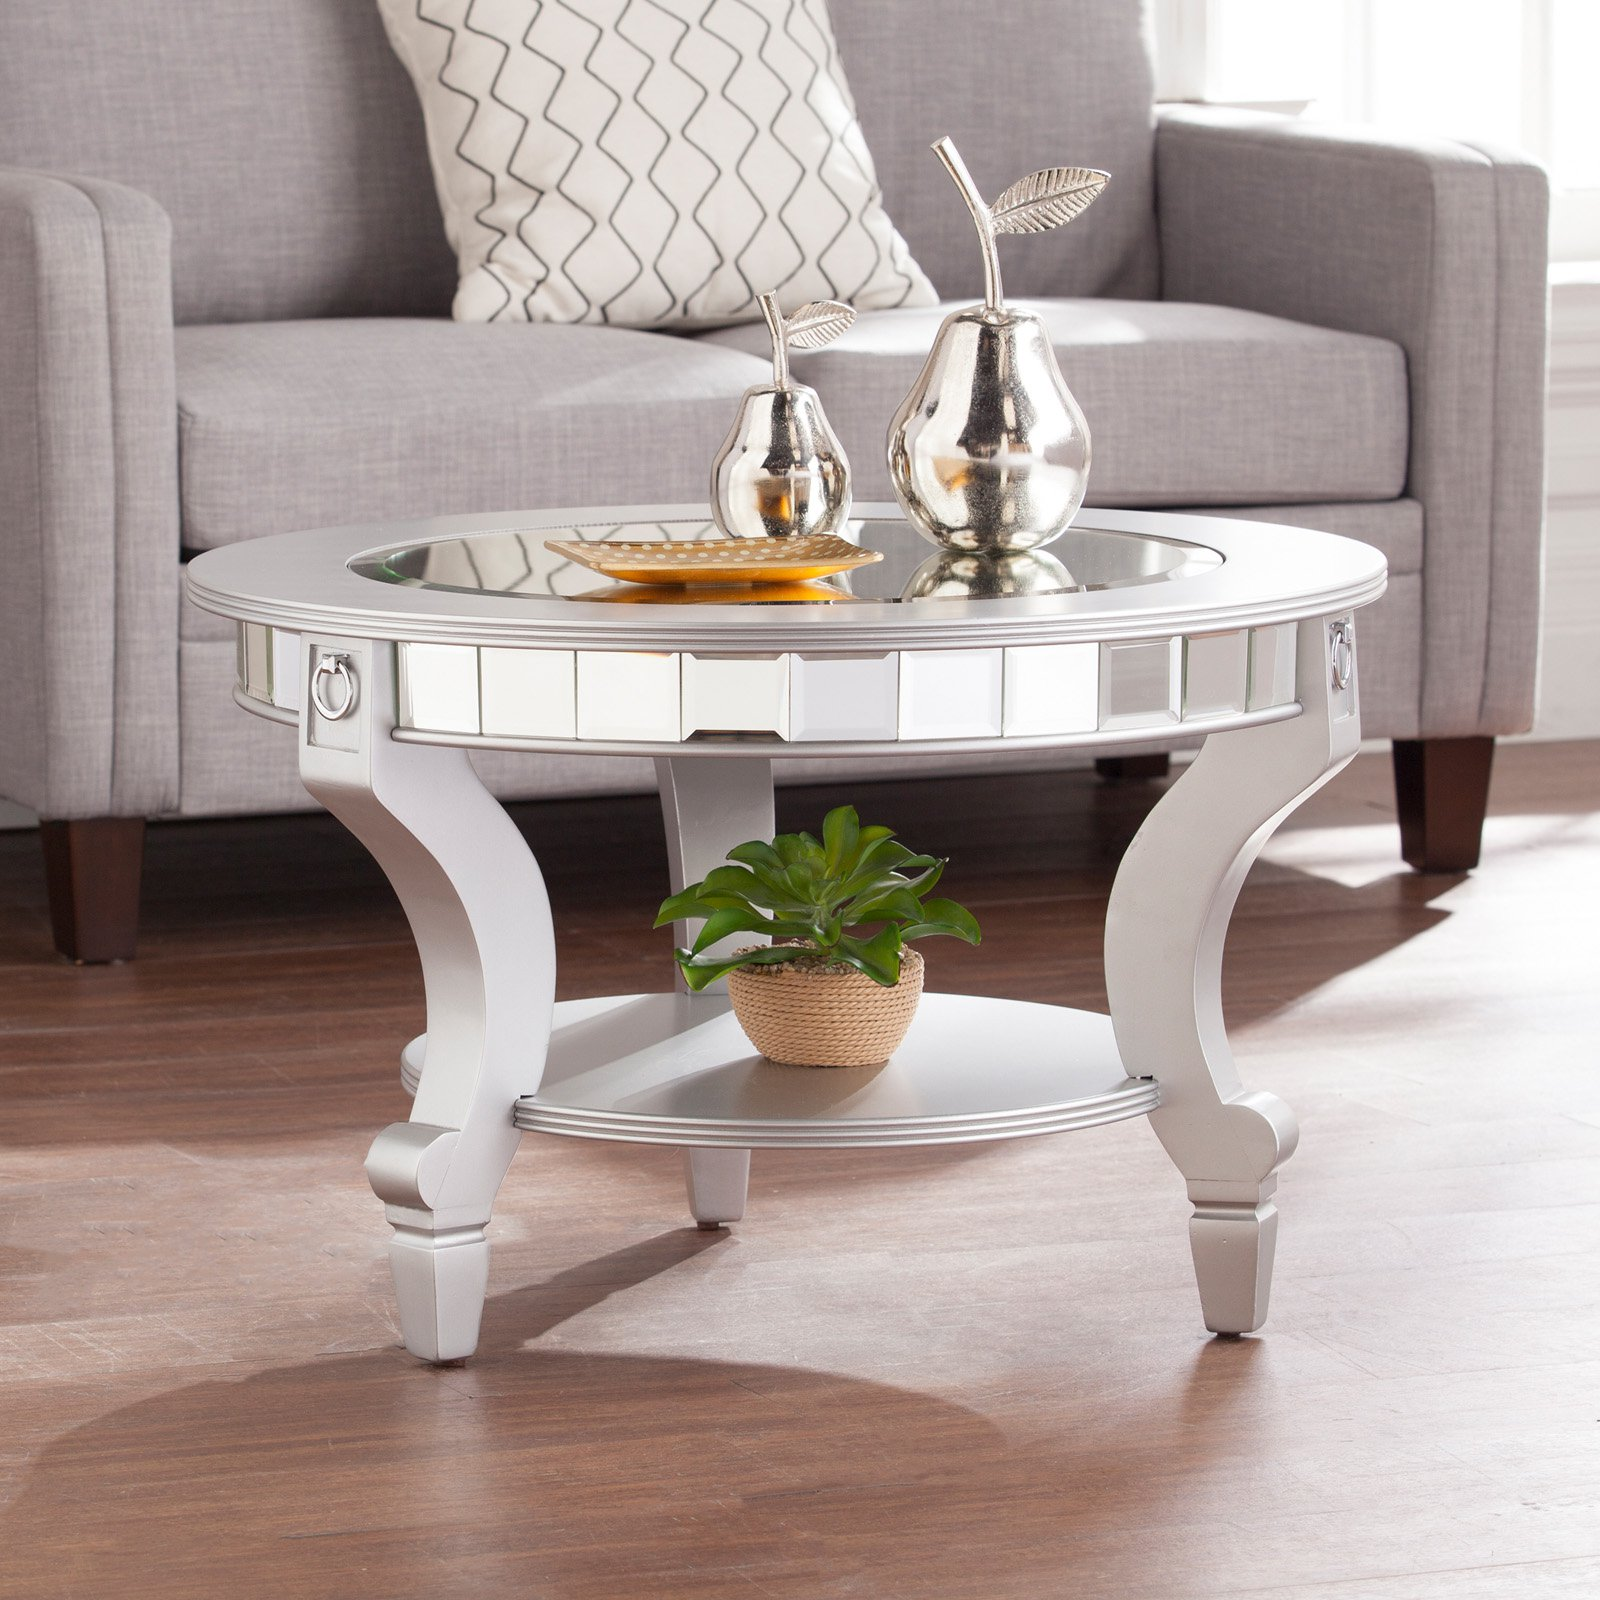 Southern Enterprises Lindsay Glam Mirrored Round Cocktail Table   Matte  Silver